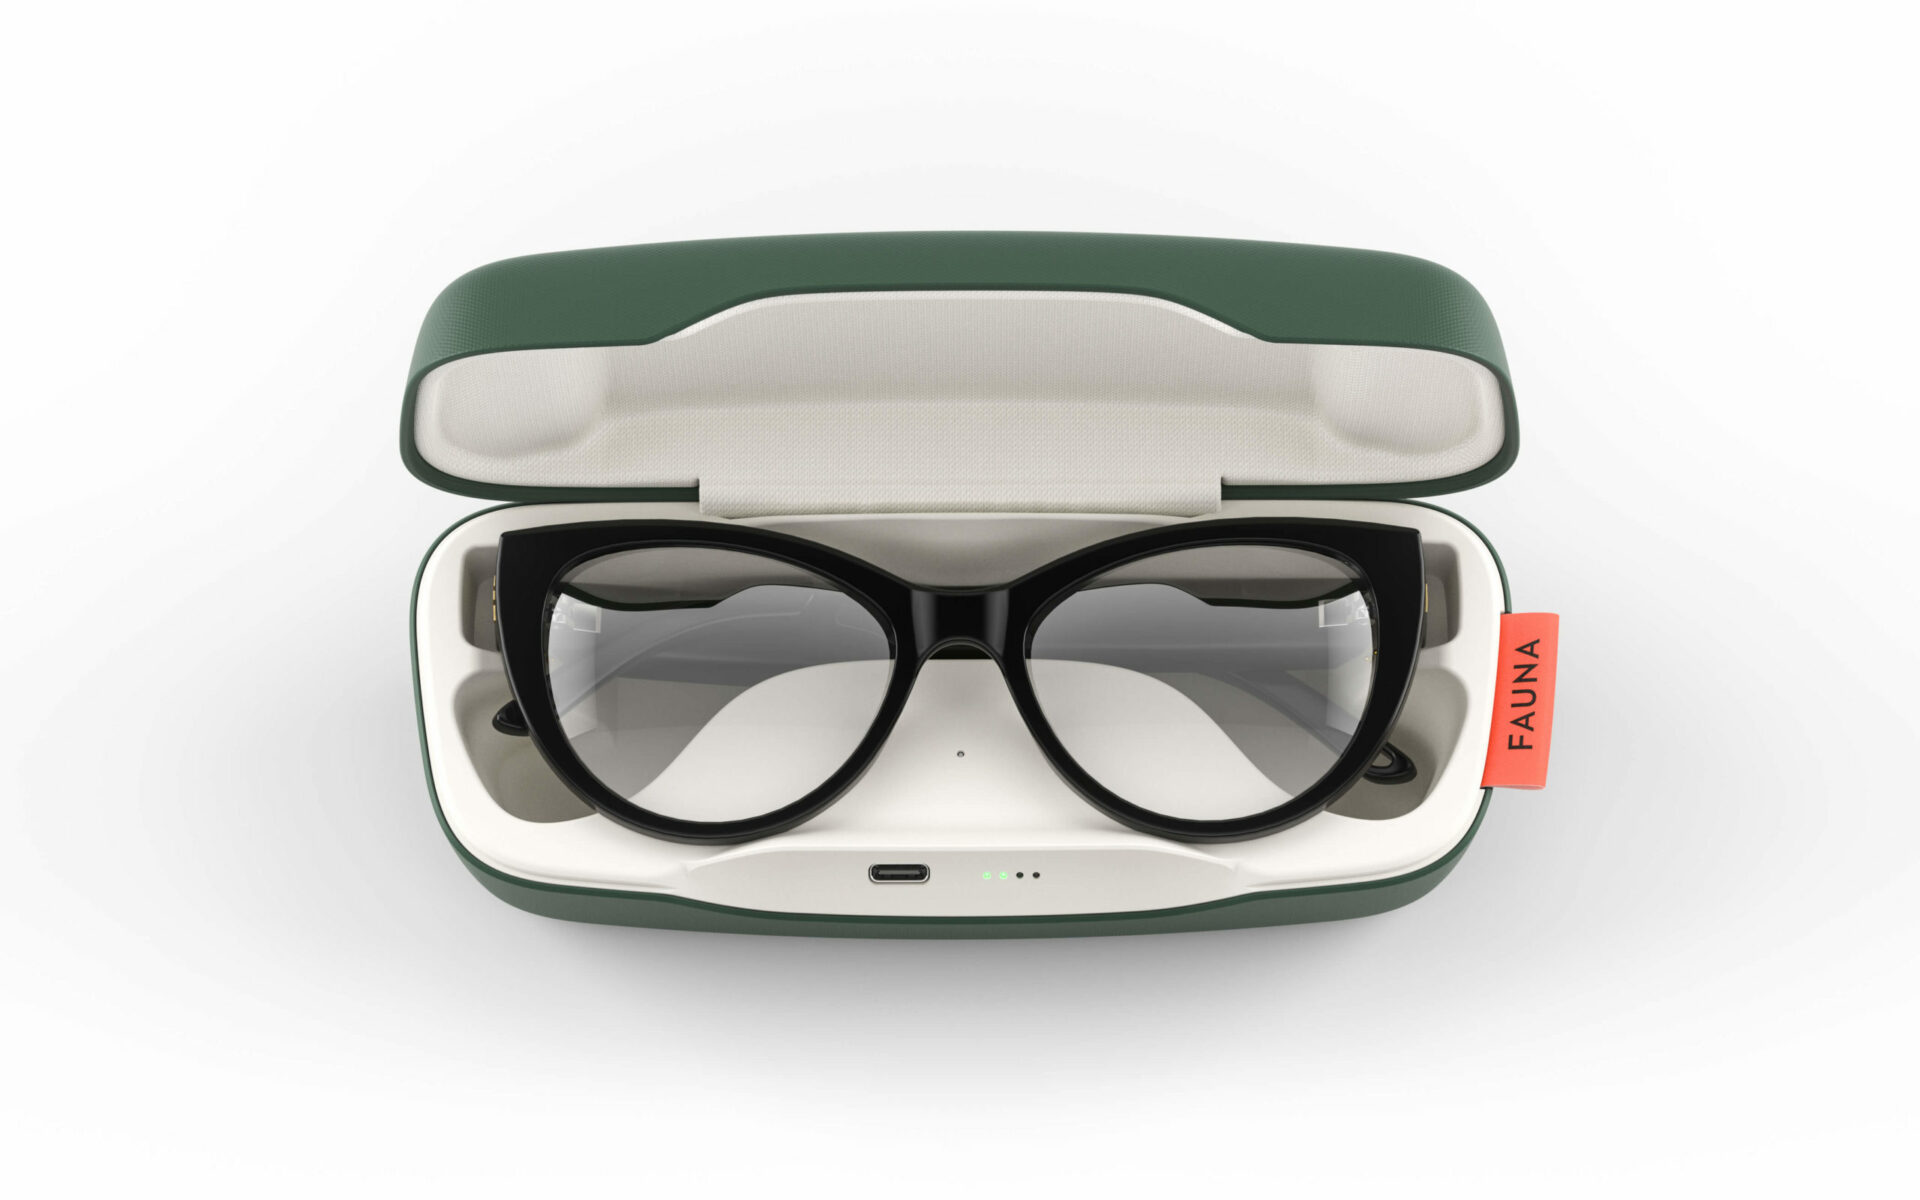 Fauna Levia Black audio glasses in charging case